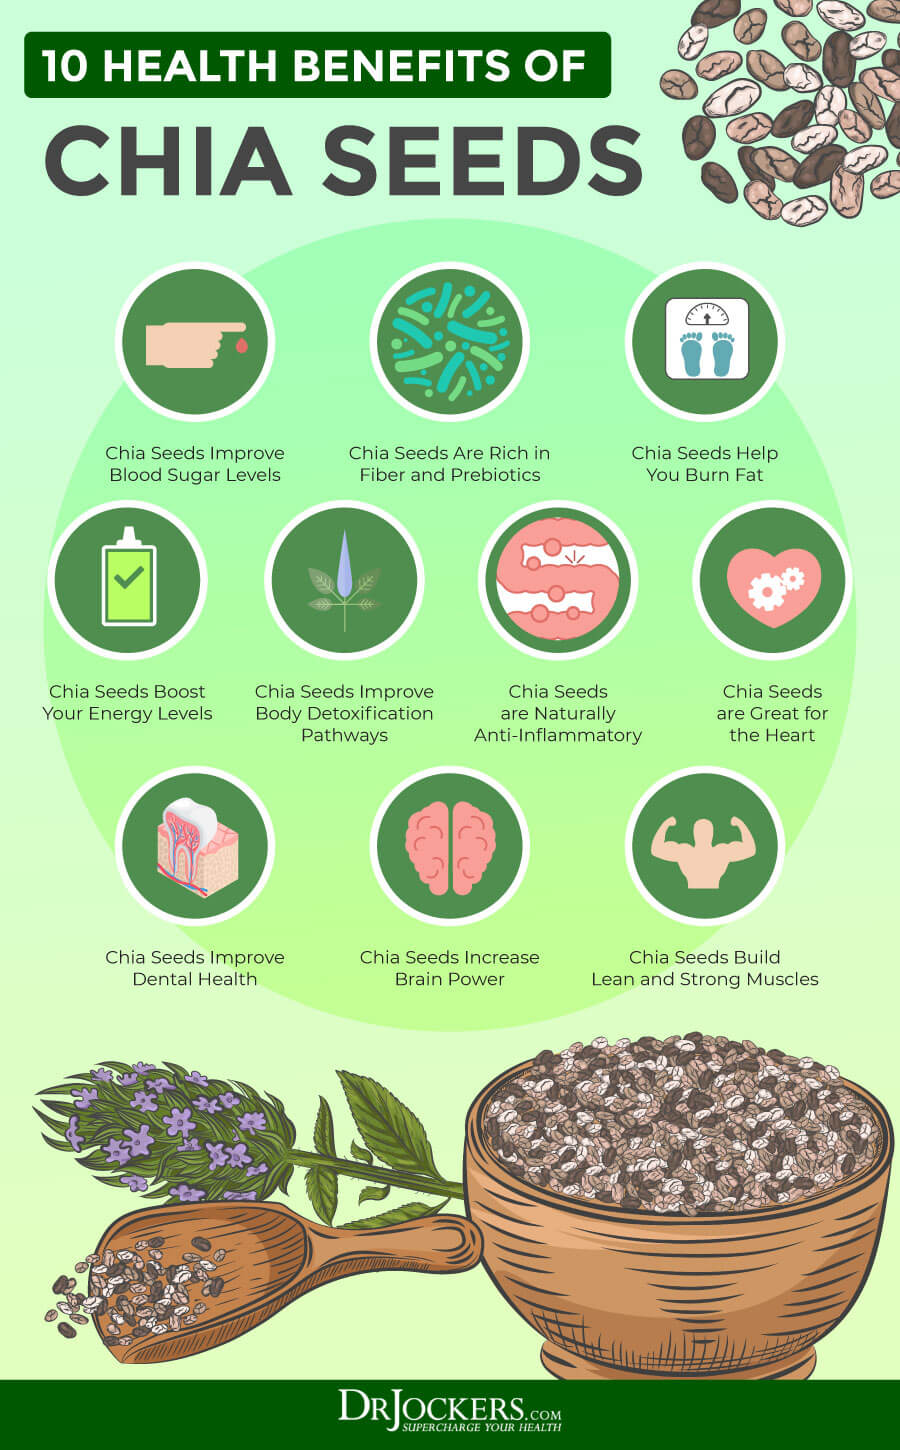 chia seeds, The Top 3 Health Benefits of Chia Seeds